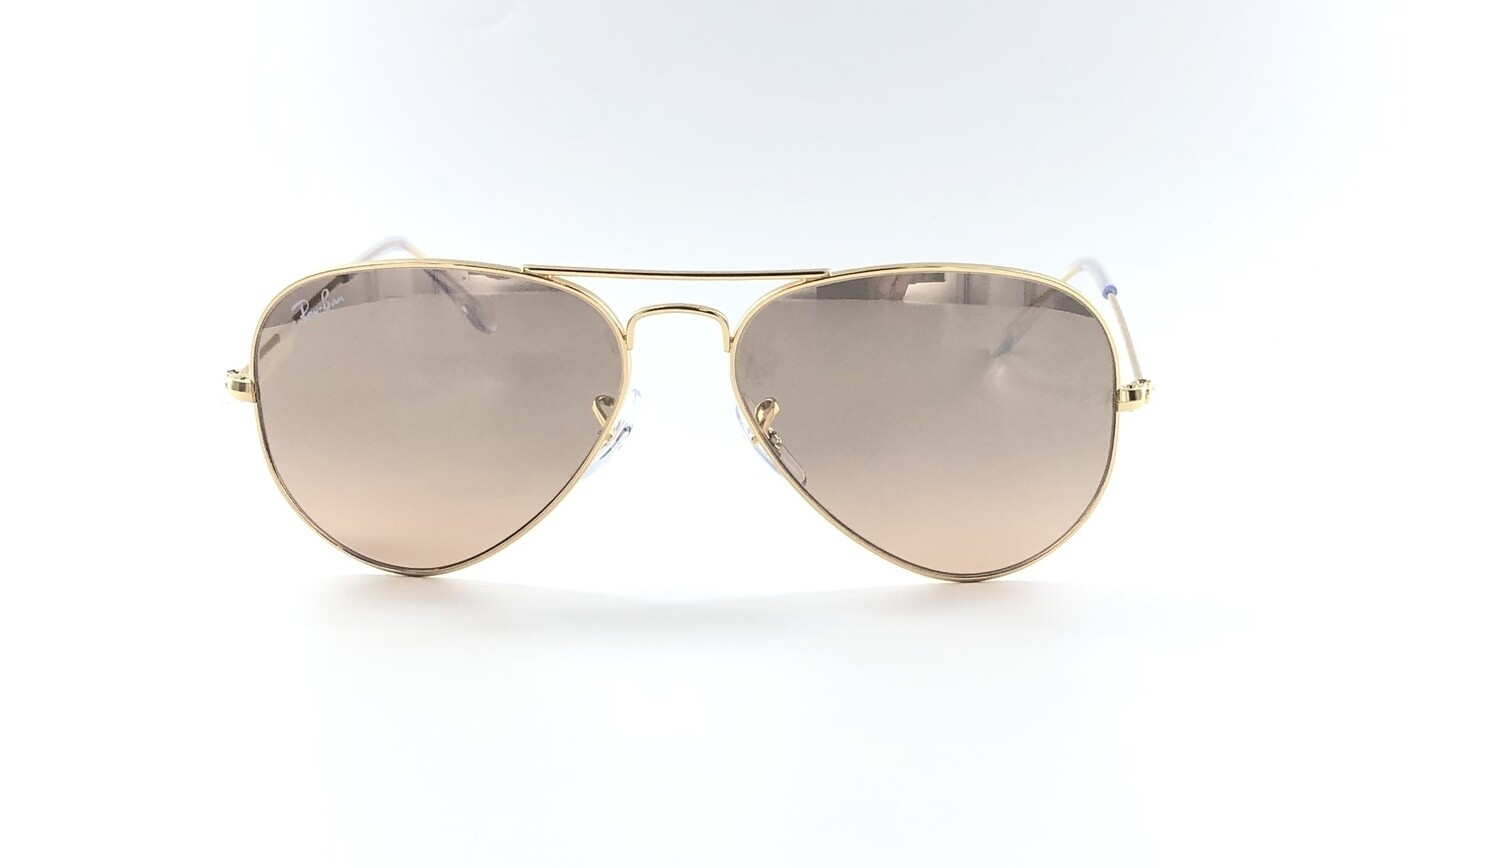 RB 3025 Aviator Large 001/3E